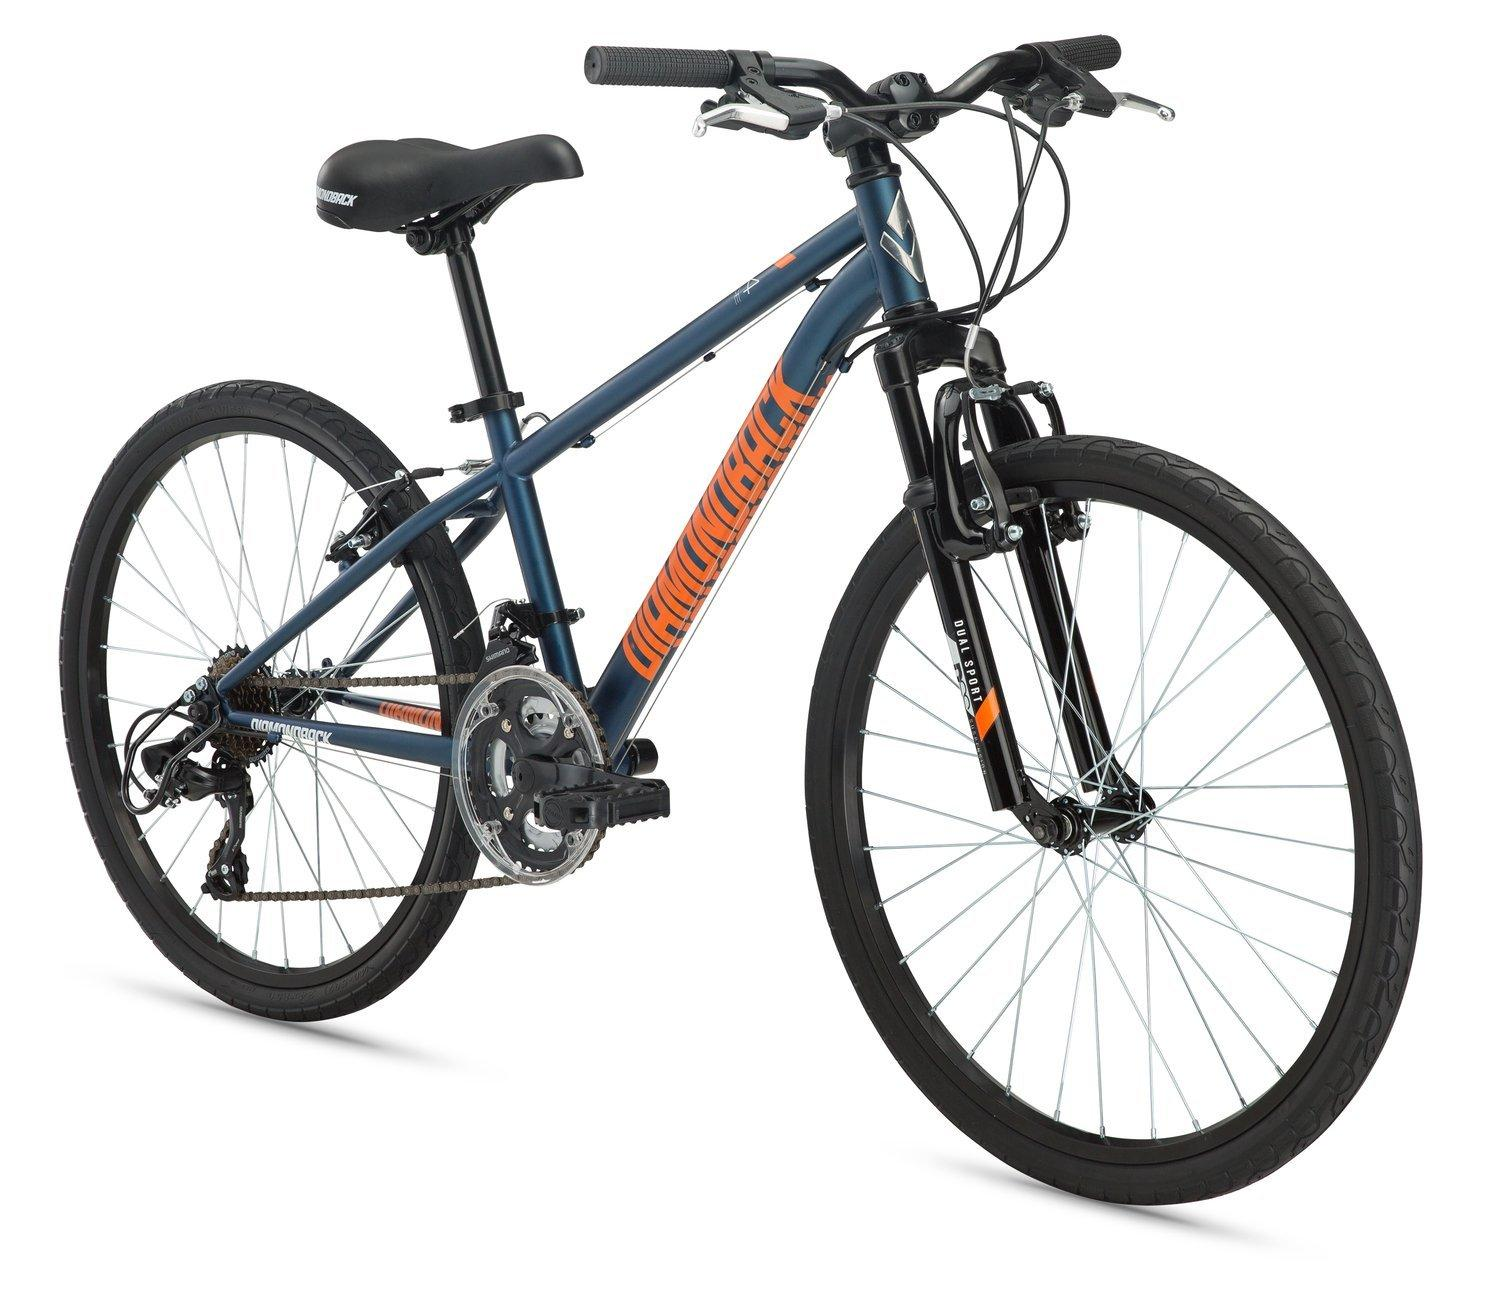 Diamondback Bicycles Dual Sport Bike for $198.49 Shipped